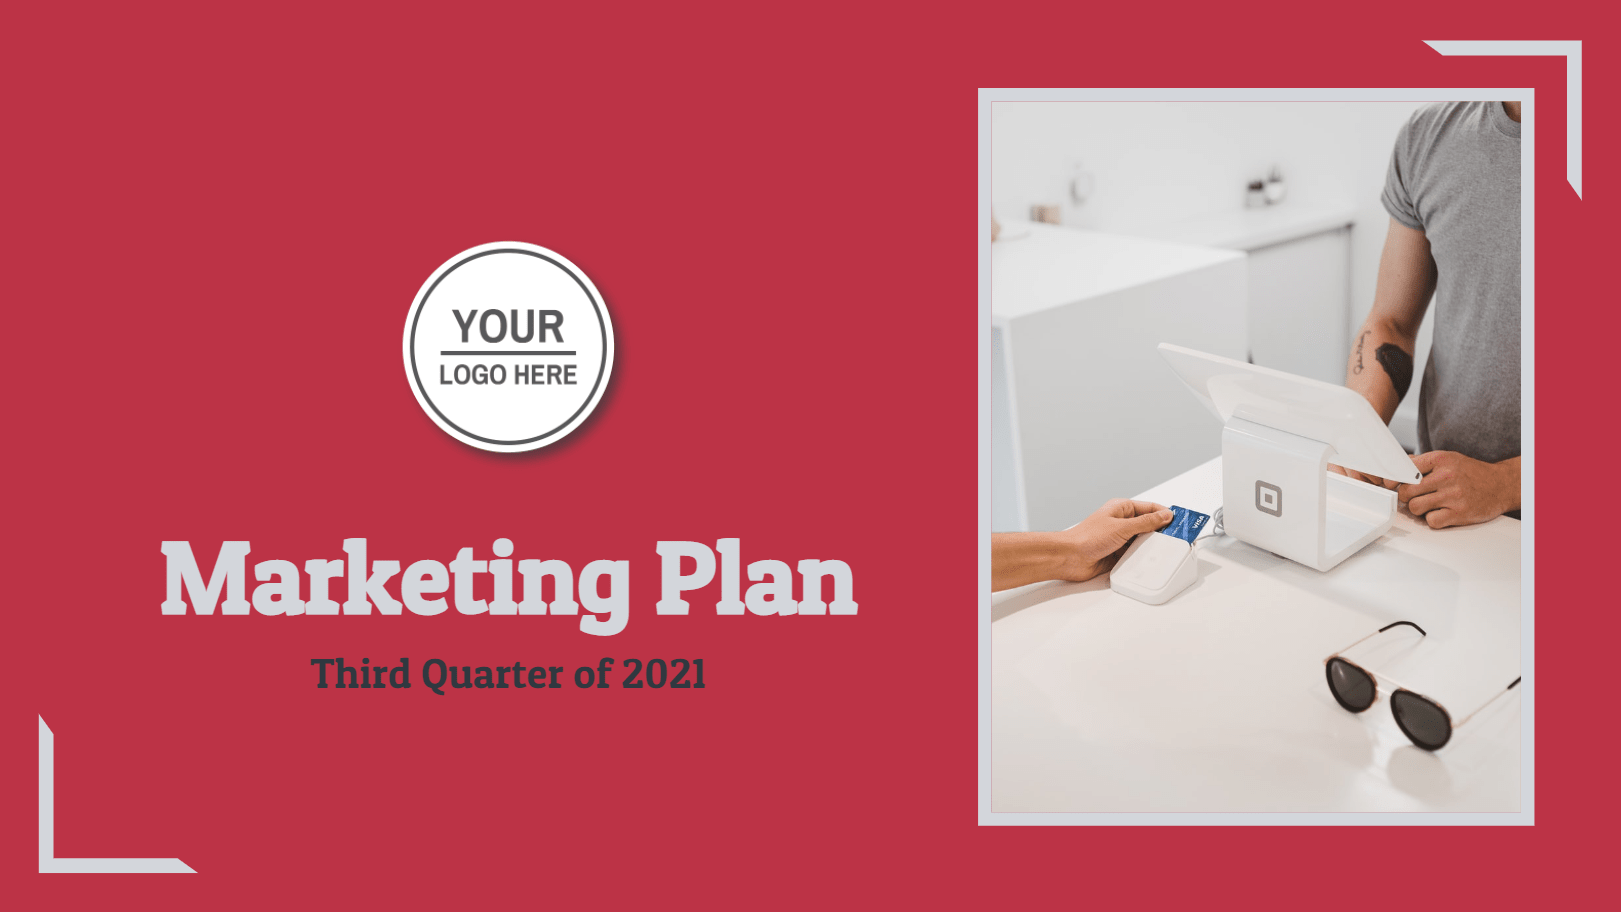 What does your marketing plan for the next quarter look like. Start working on your marketing strategy and execution timeline, outline the marketing opportunities and business model. Outline your target channels and social media outlets such as Instagram, LinkedIn, email marketing tools and Twitter. Talk about your target audience and competitors to look for some inspiration in the plan. Discover marketing best practices in your industry and what your customer persona expects.